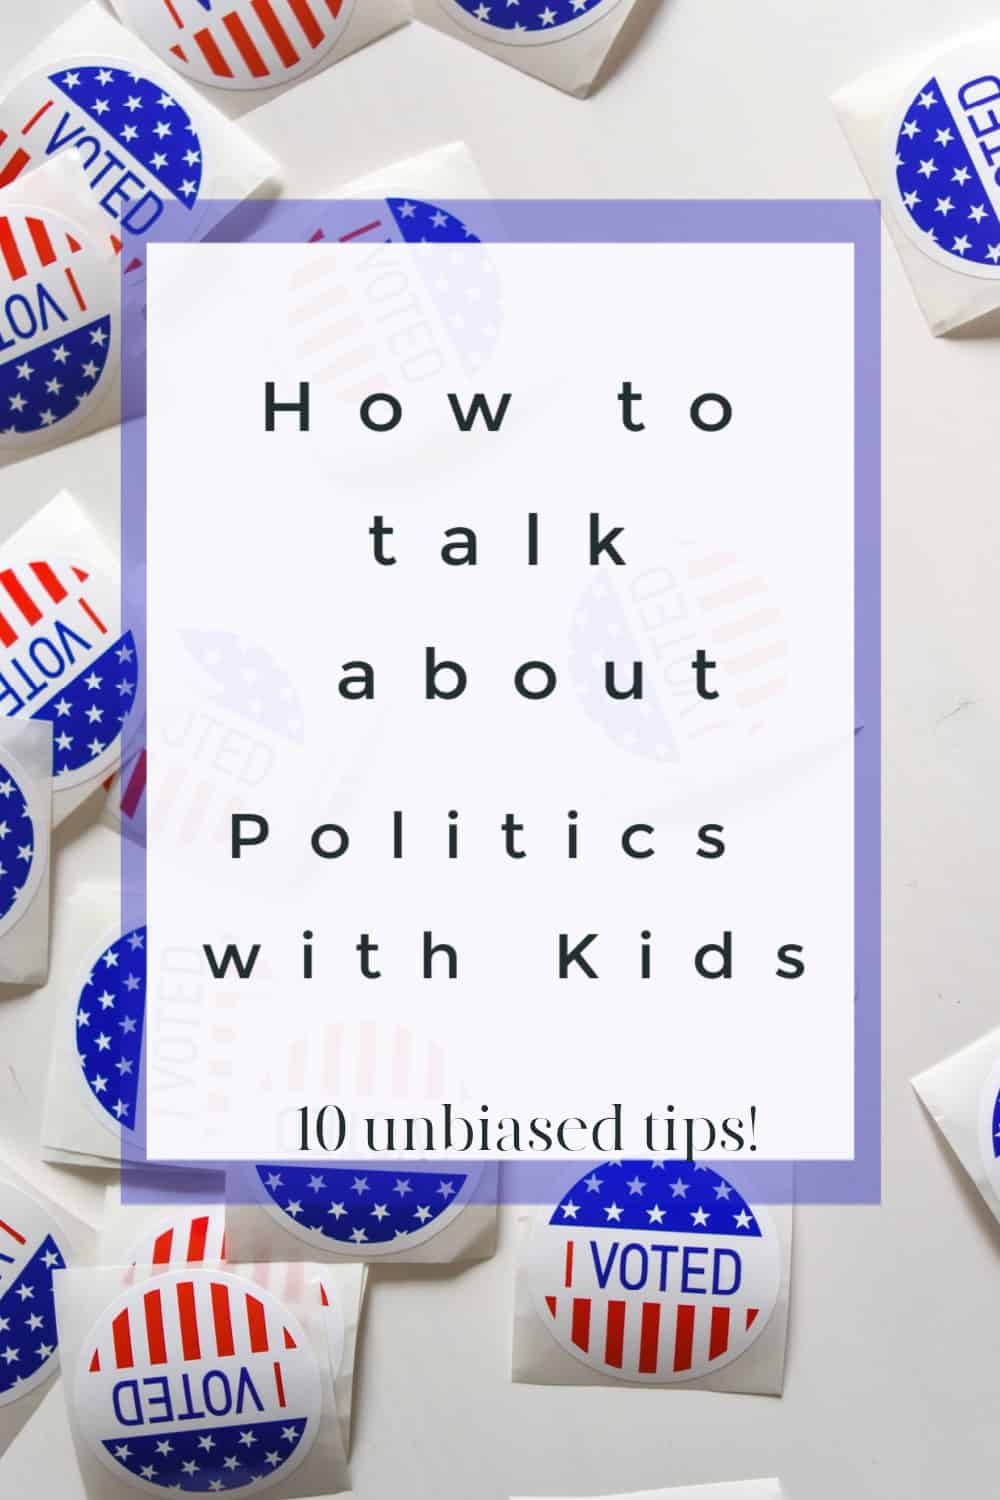 Wondering how to talk about politics with kids? This unbiased post from a mom is packed with tips to help you hold an honest conversation.